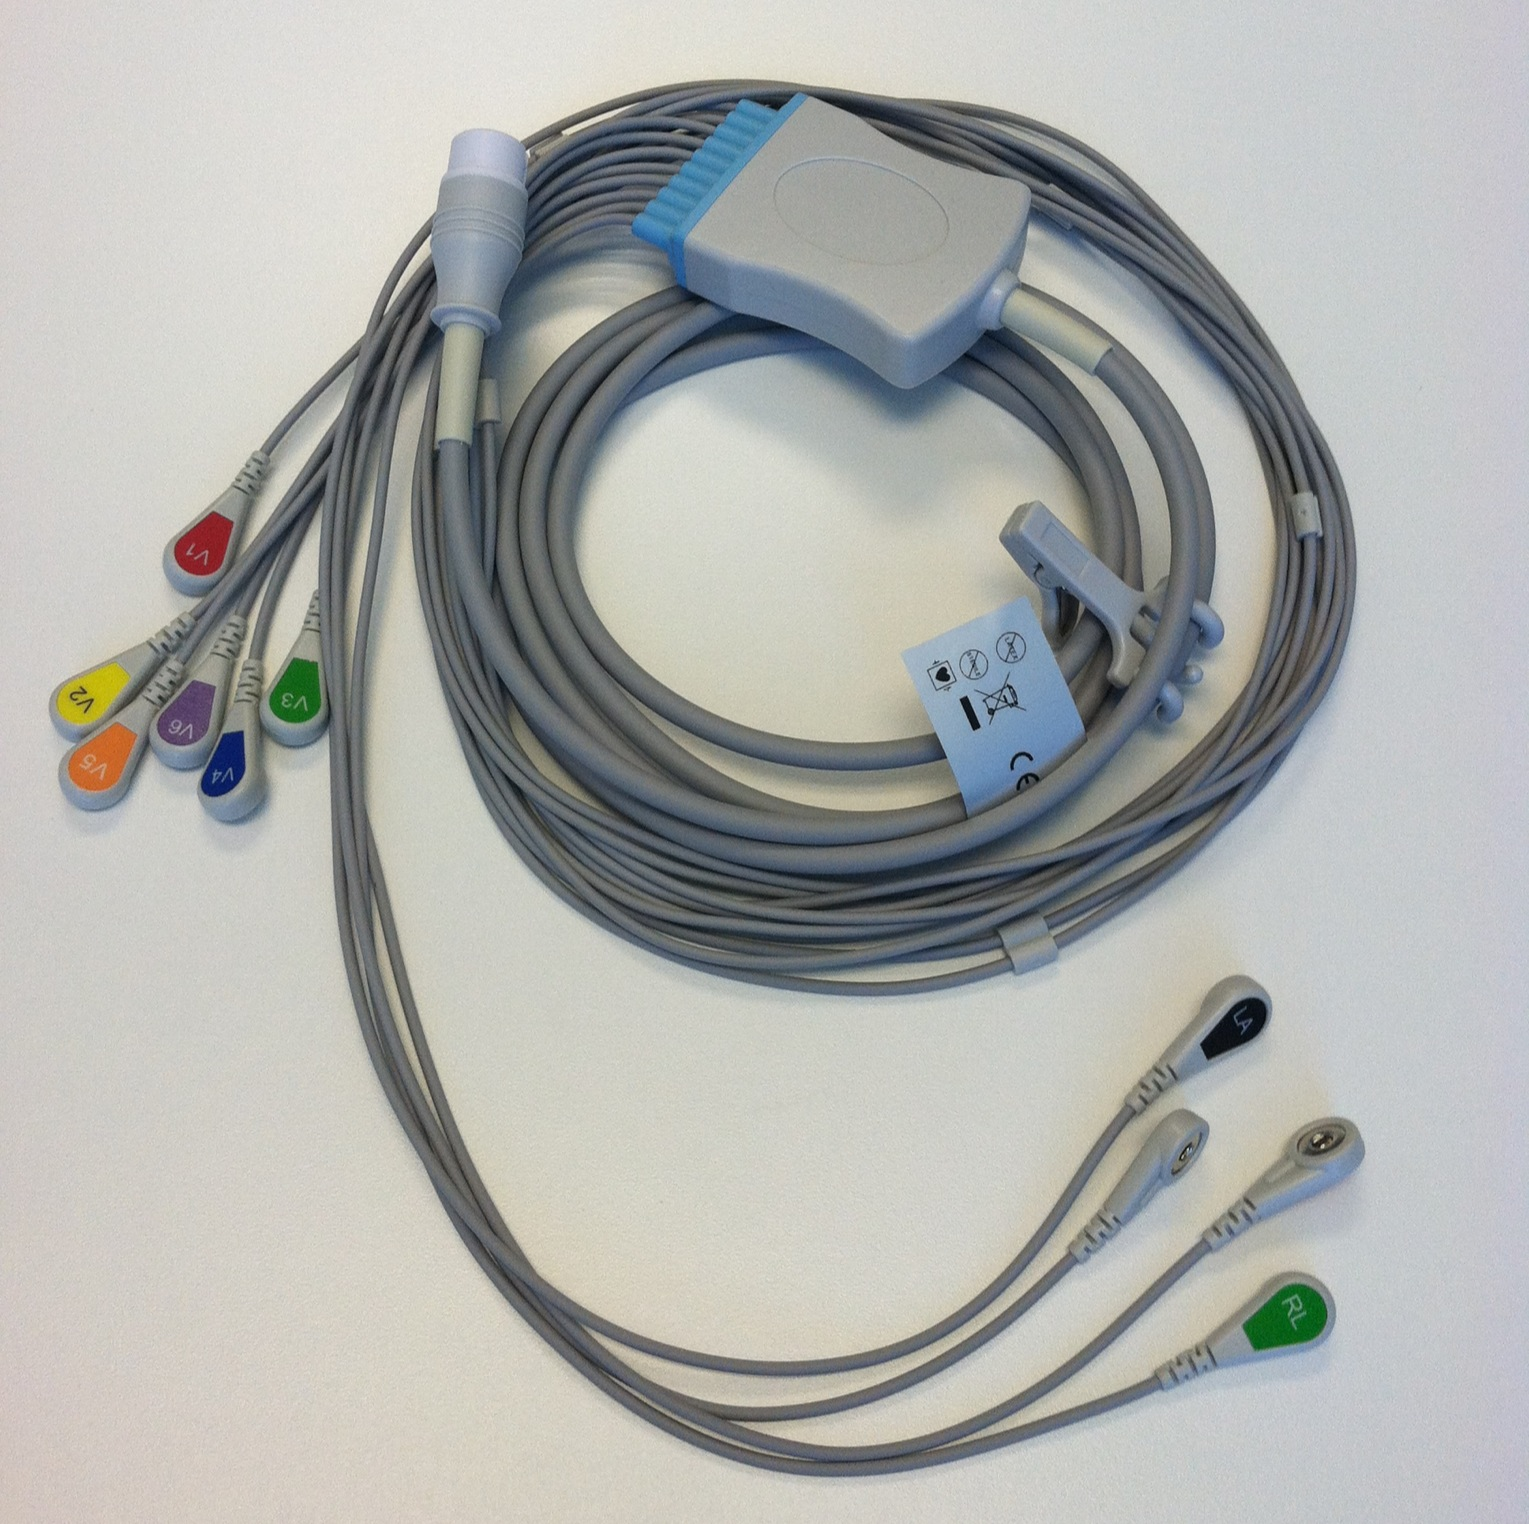 Philips 12 Lead ECG Cable